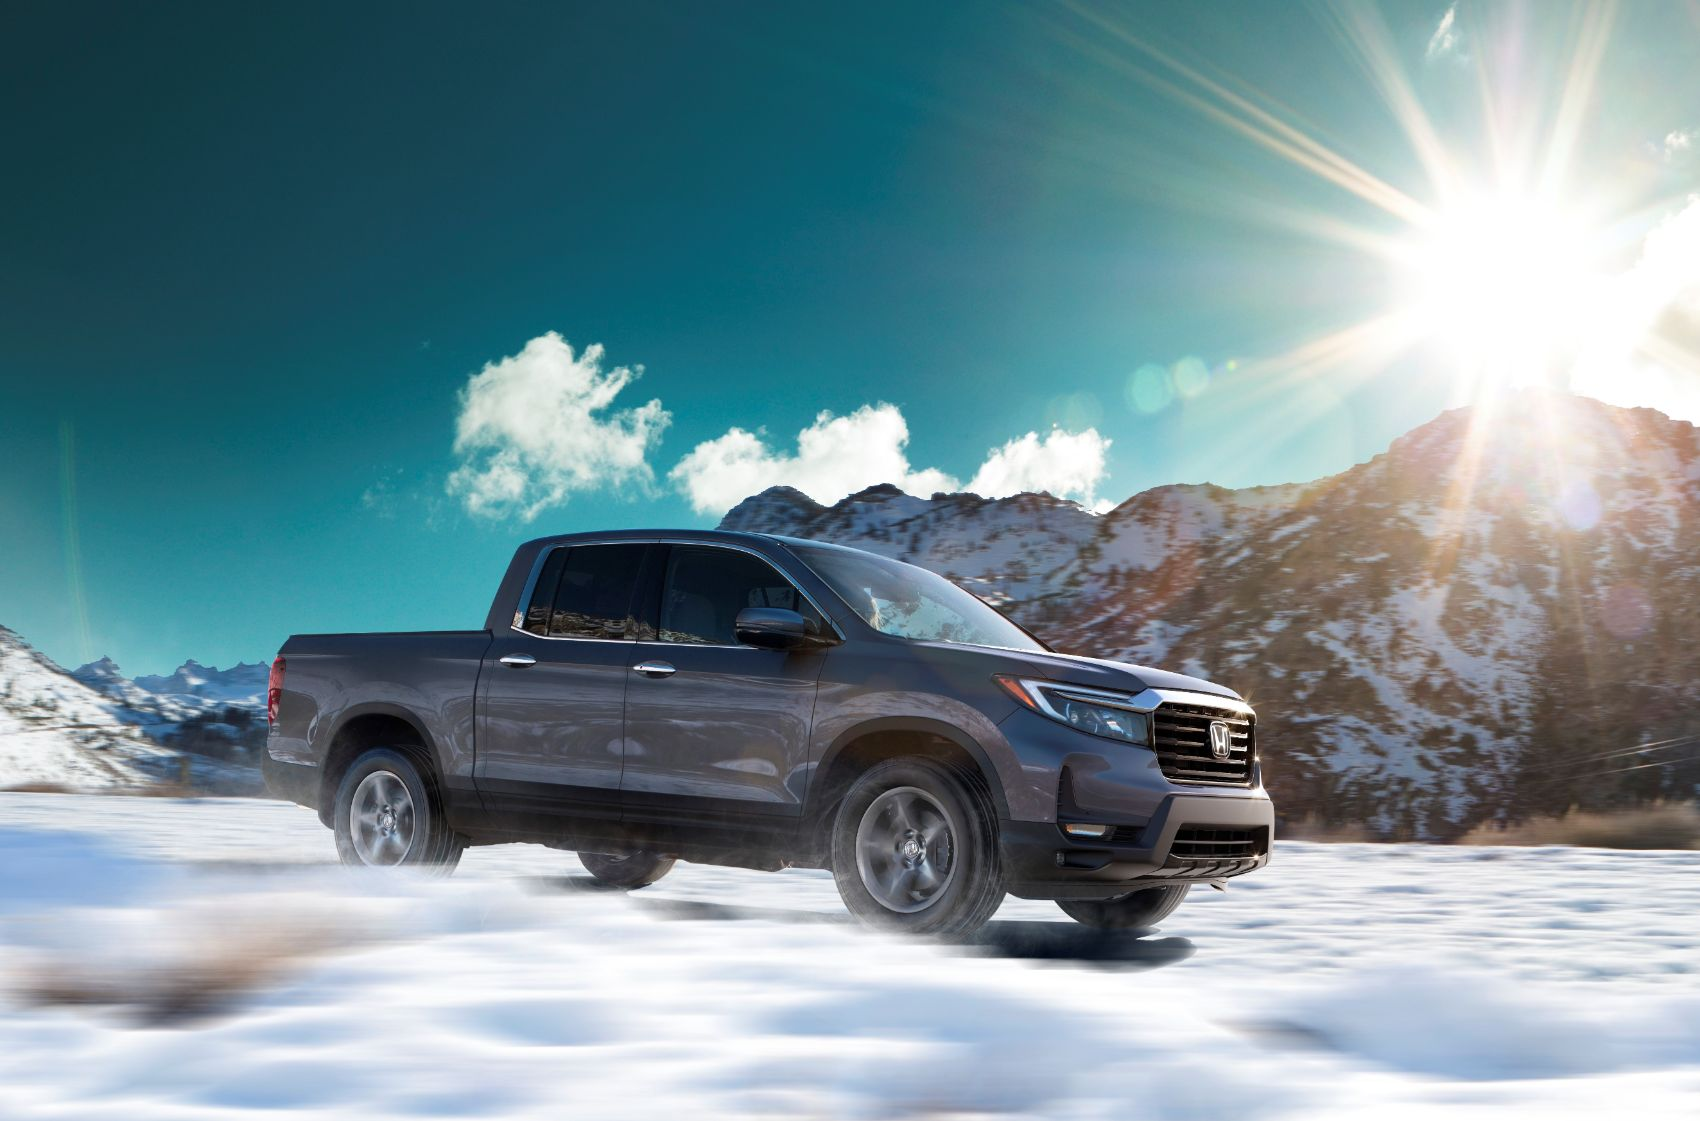 2021 Honda Ridgeline Set To Arrive In February Msrp New Packages Announced